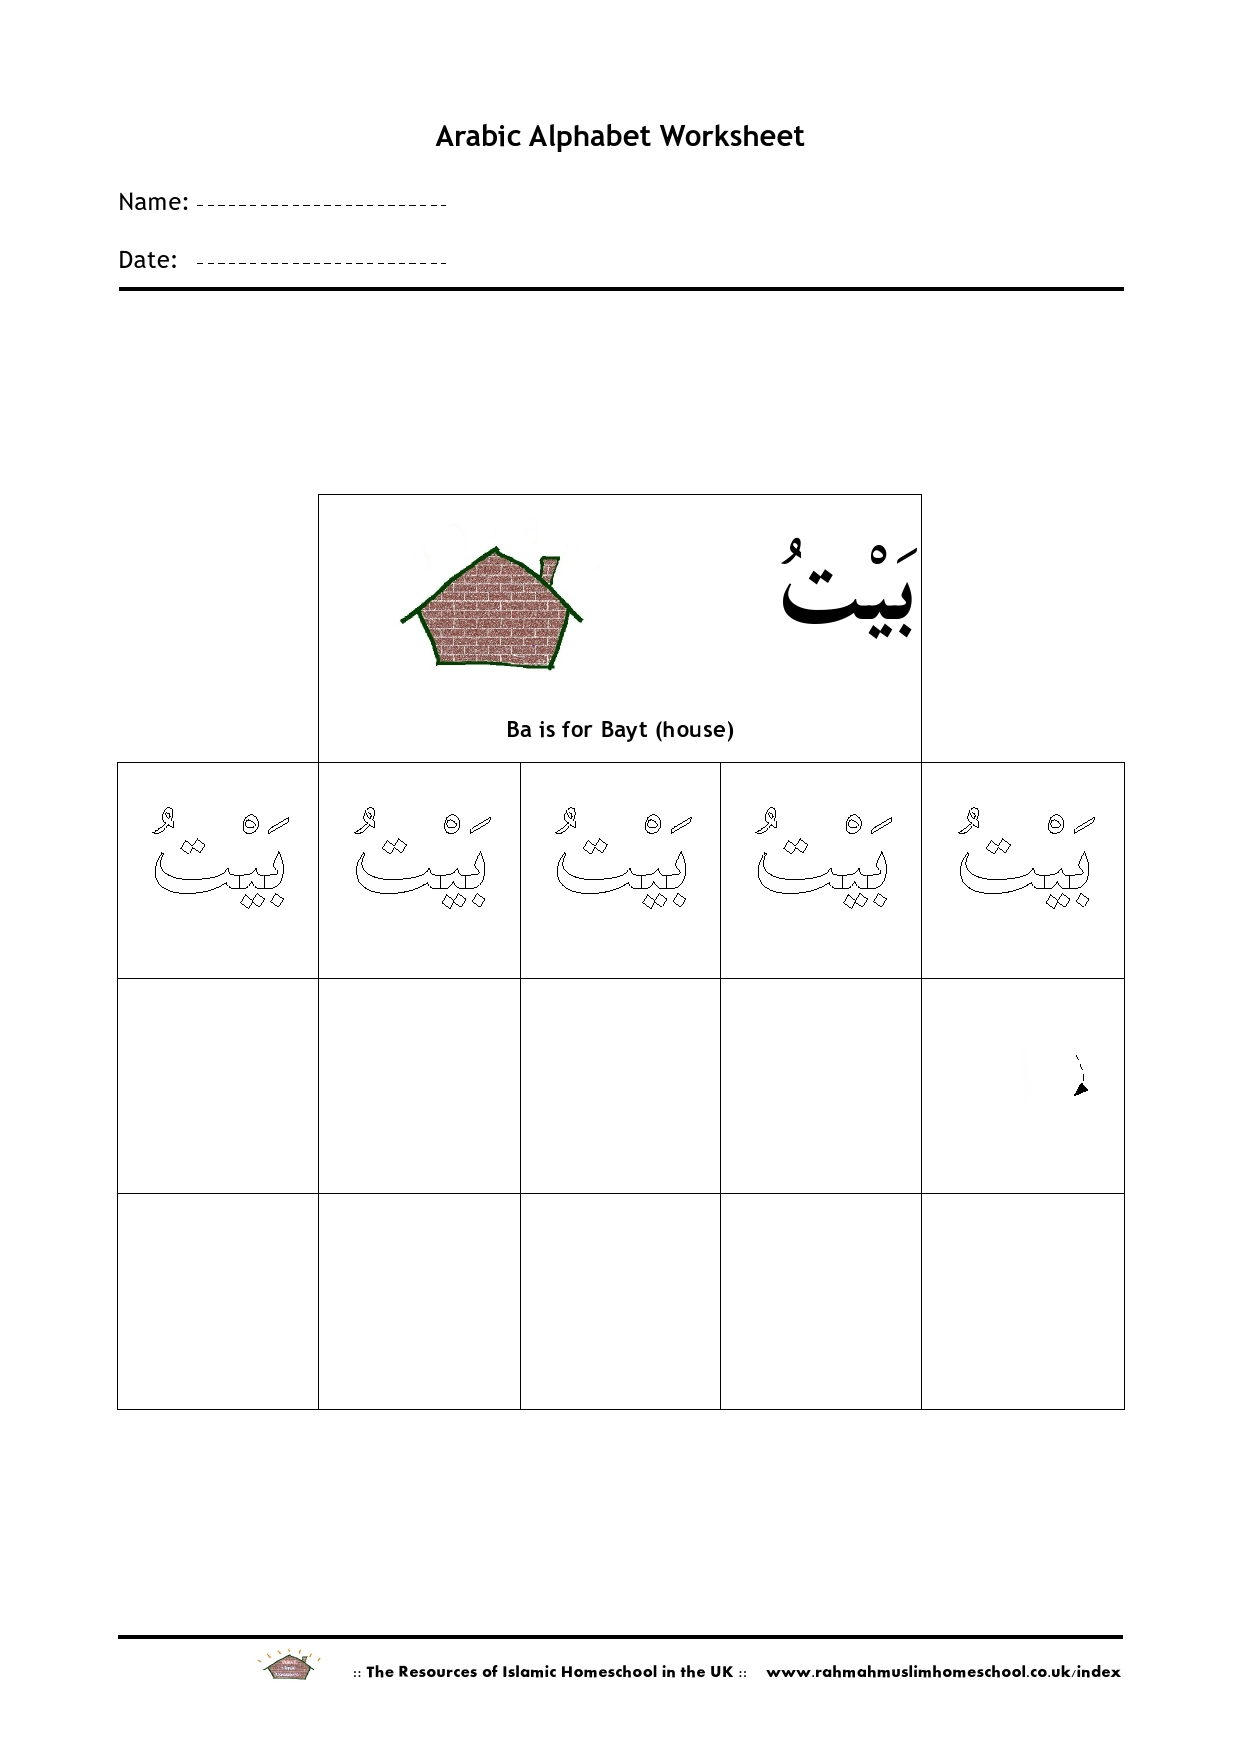 Free Arabic Alphabet Worksheet Ba Is For Bayt A House